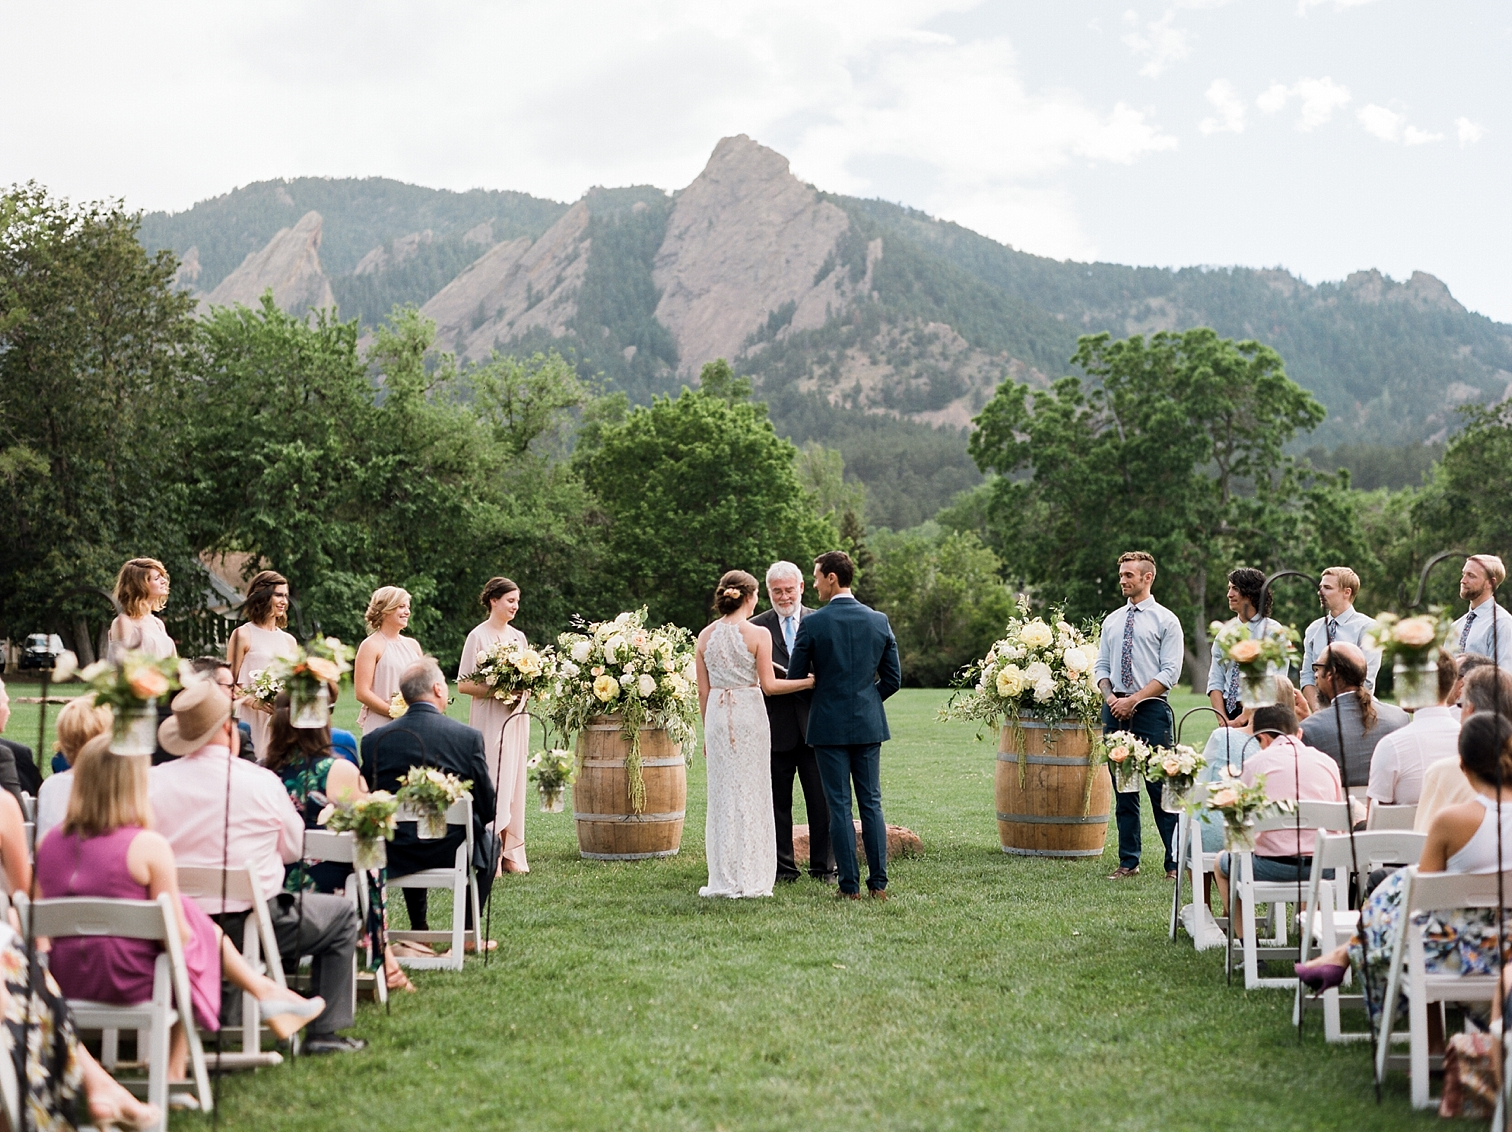 Outdoor Wedding Details, Colorado Mountain Weddings, Danielle DeFiore Photographer, Destination Wedding Photographers, Weddings in Boulder Colorado, Outdoor Ceremony, Film Photographer, Bride And Groom Staning At Alter